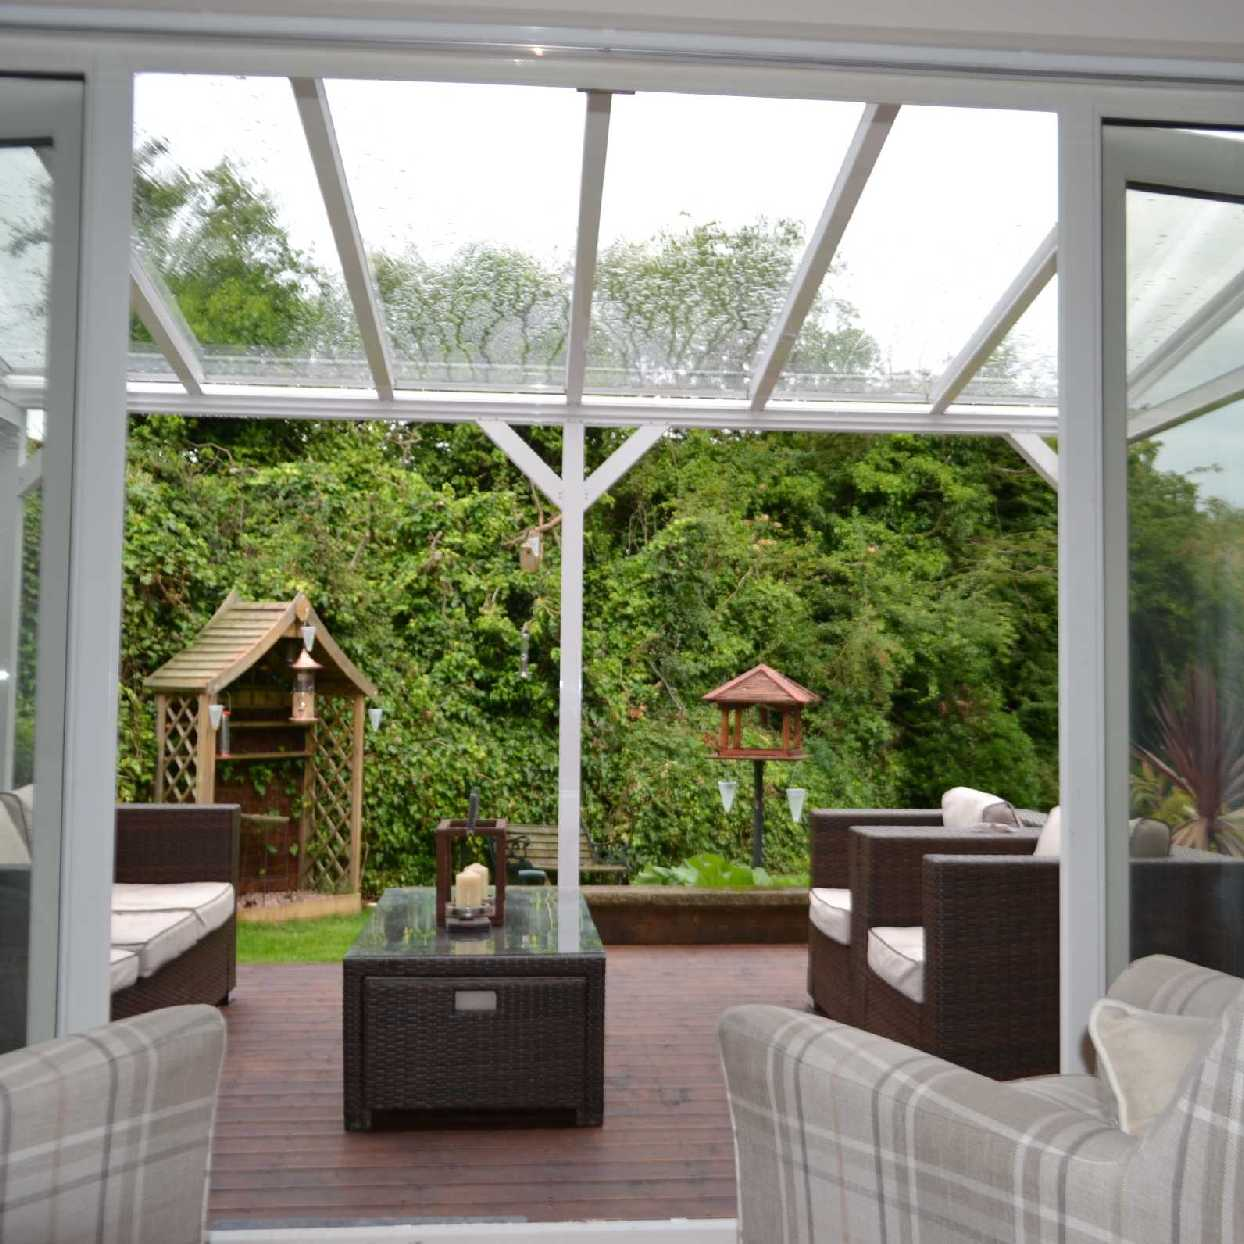 Great selection of Omega Smart White Lean-To Canopy UNGLAZED for 6mm Glazing - 9.8m (W) x 2.0m (P), (5) Supporting Posts